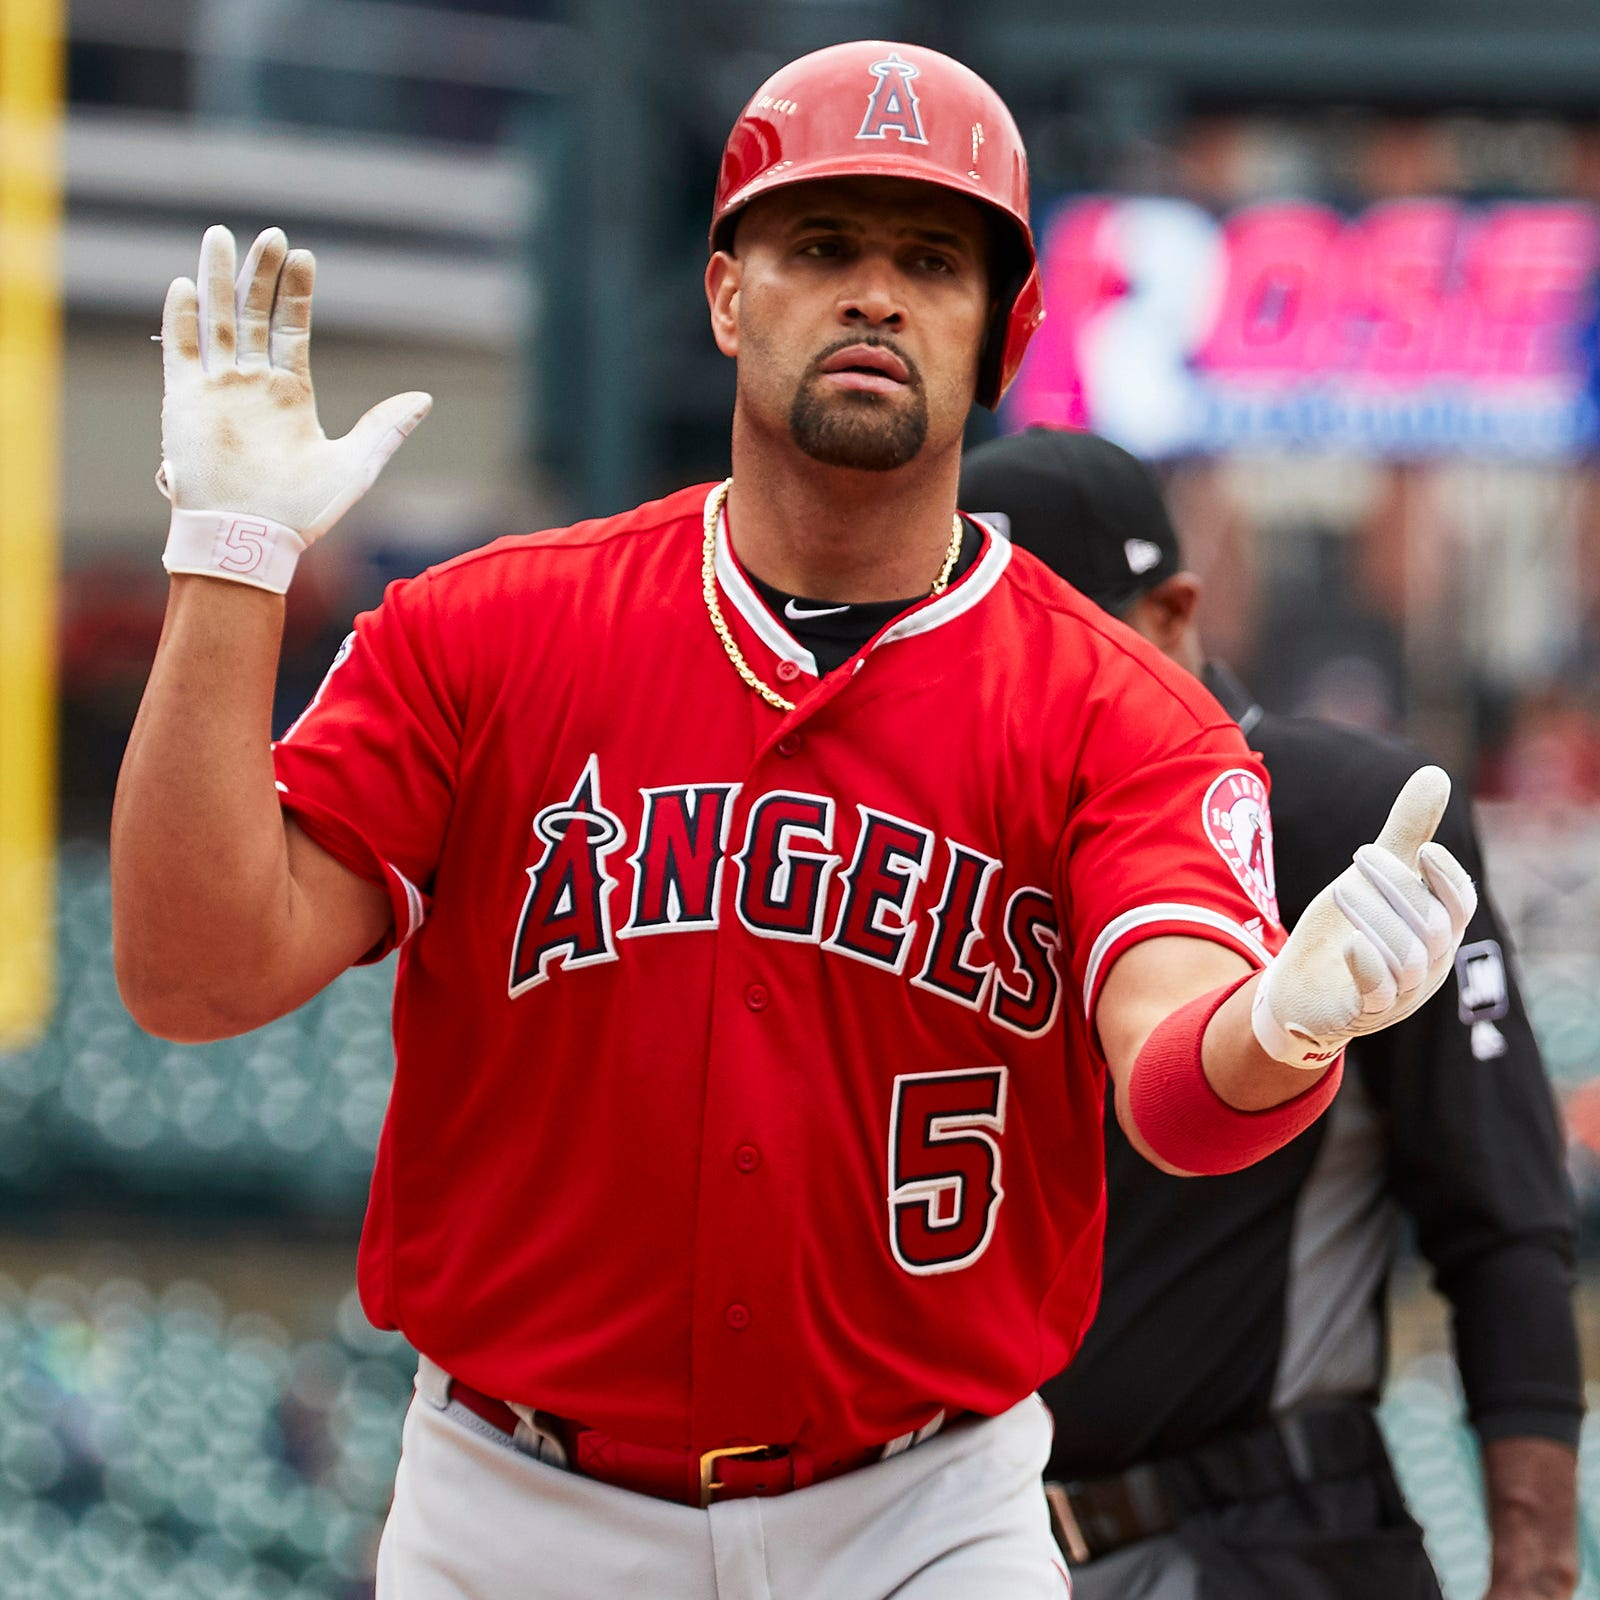 Detroit Tigers fan vents about Albert Pujols' historic RBI ball